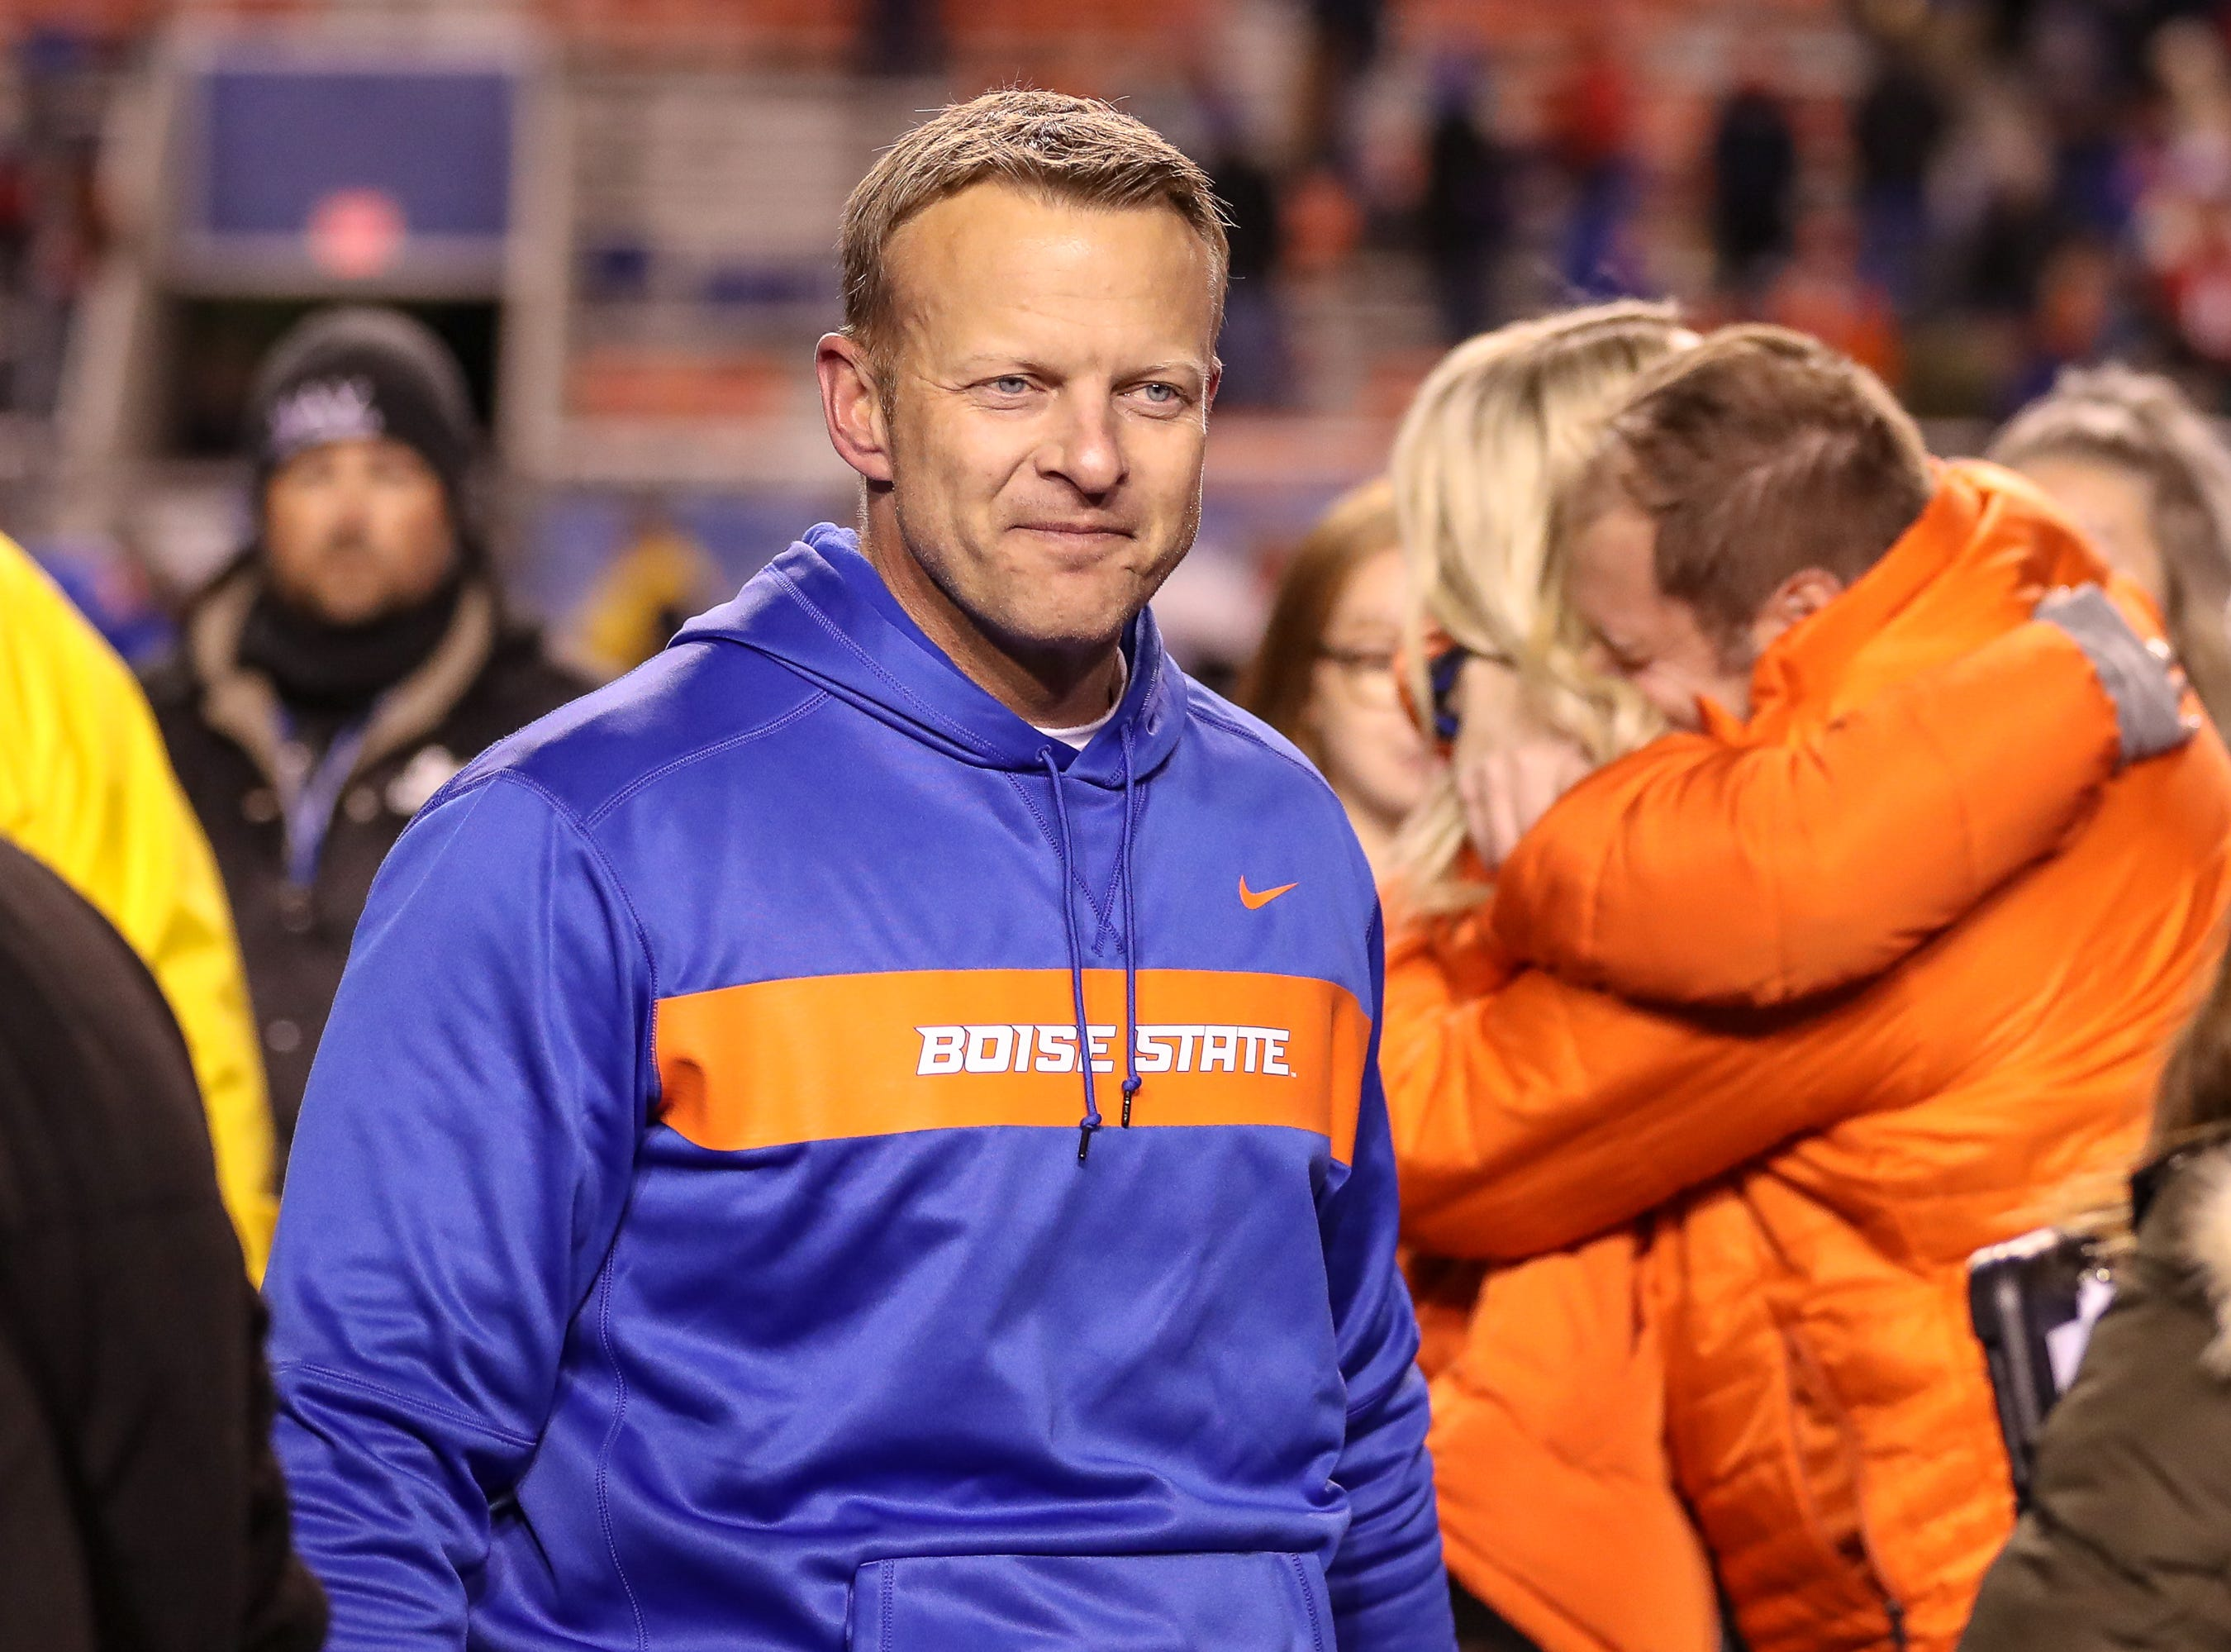 23. Boise State (9-2) | Last game: Defeated New Mexico, 45-14 | Previous ranking: NR